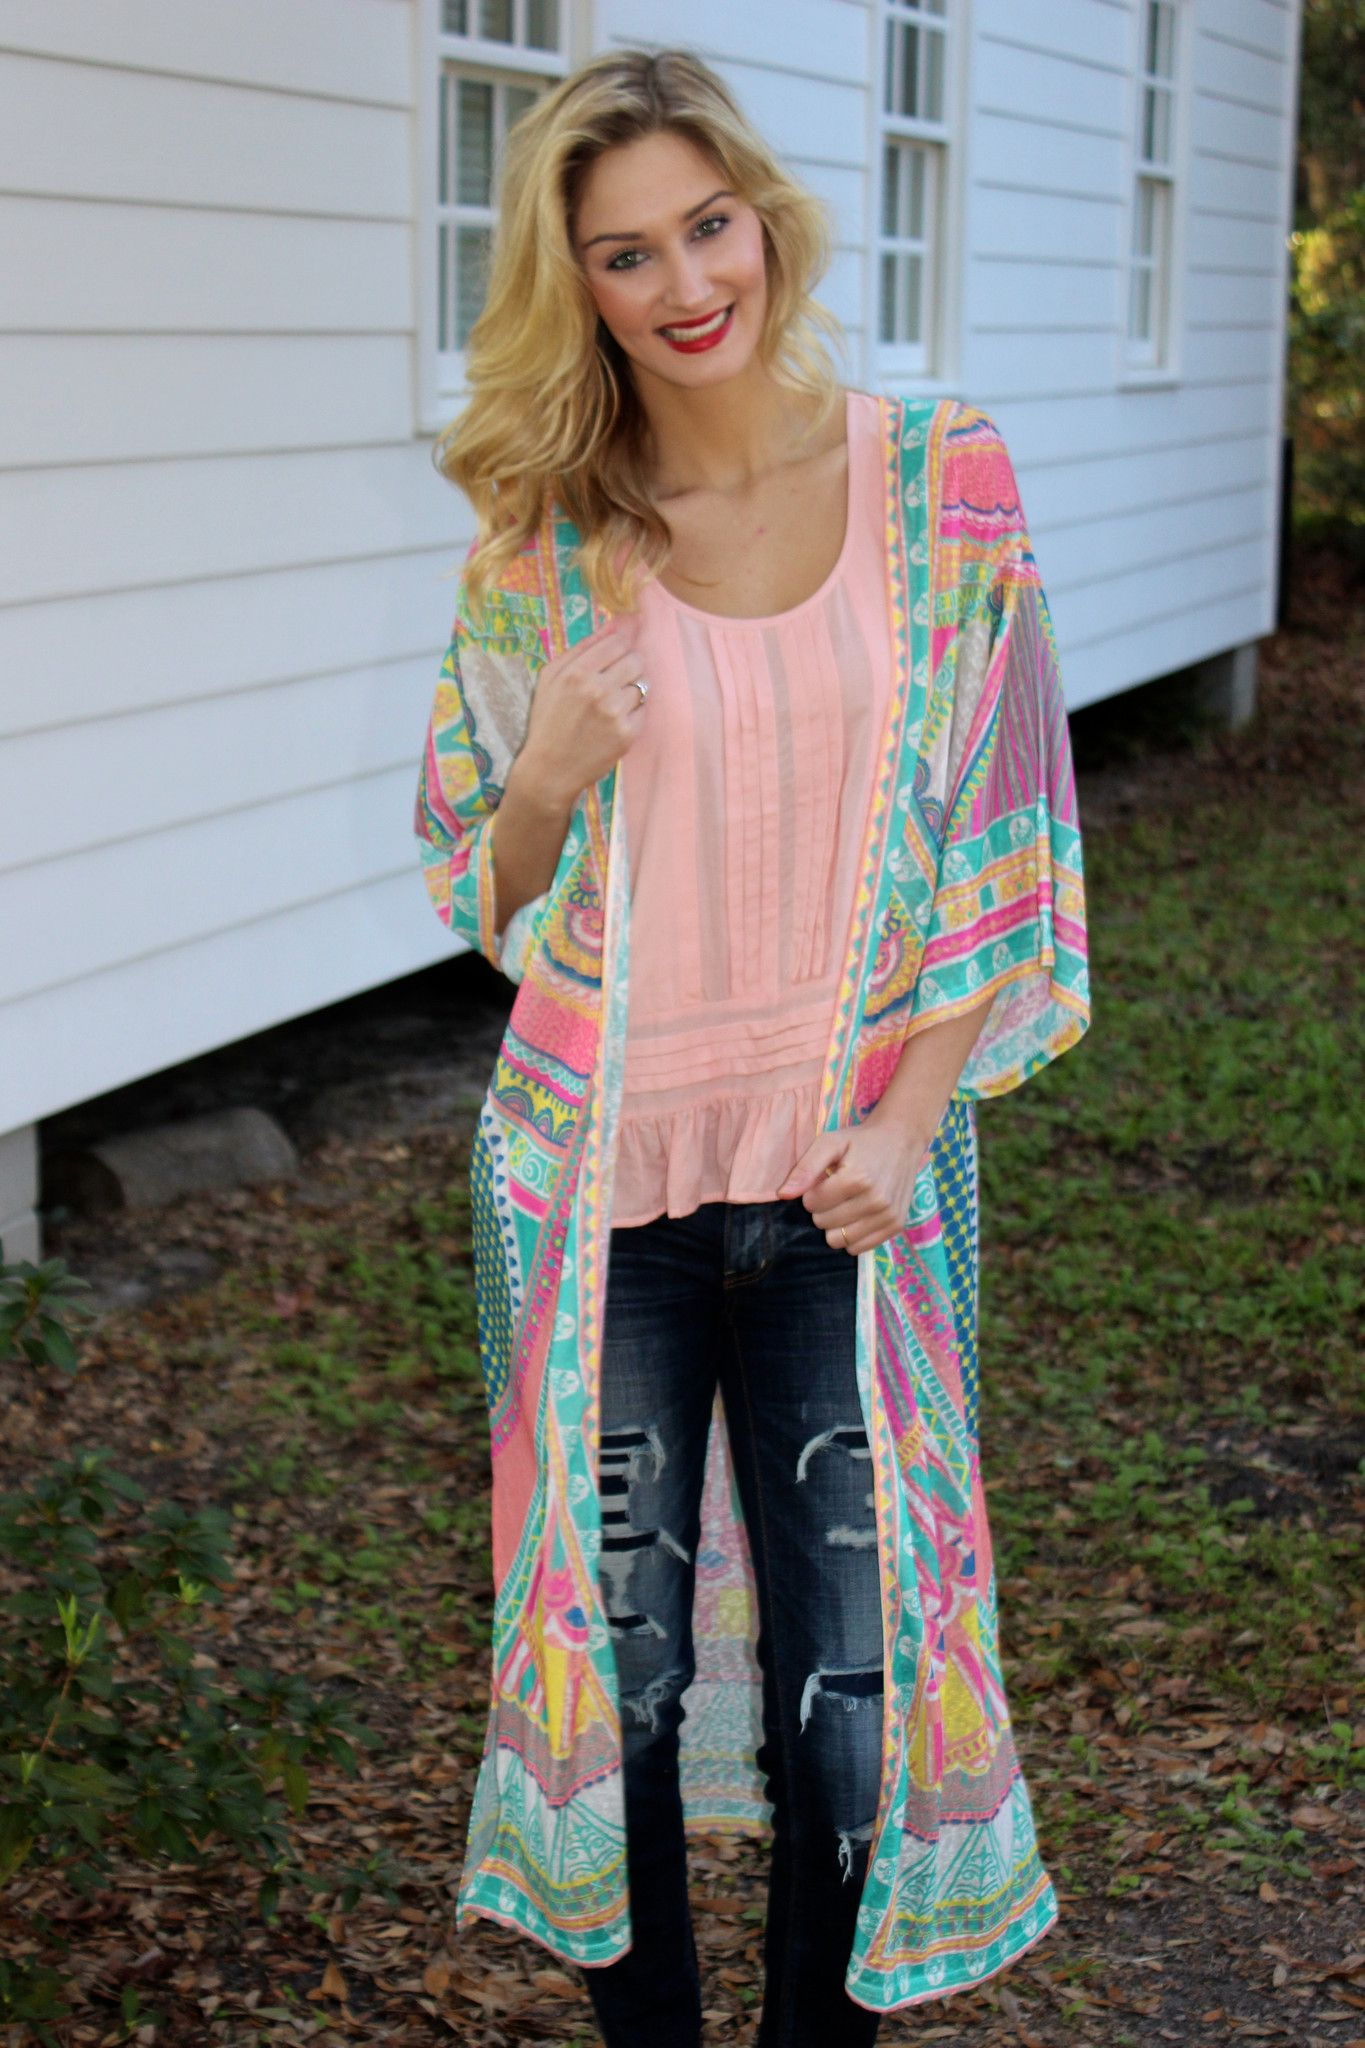 Women's Online Clothing Boutique | The Pink Nickel